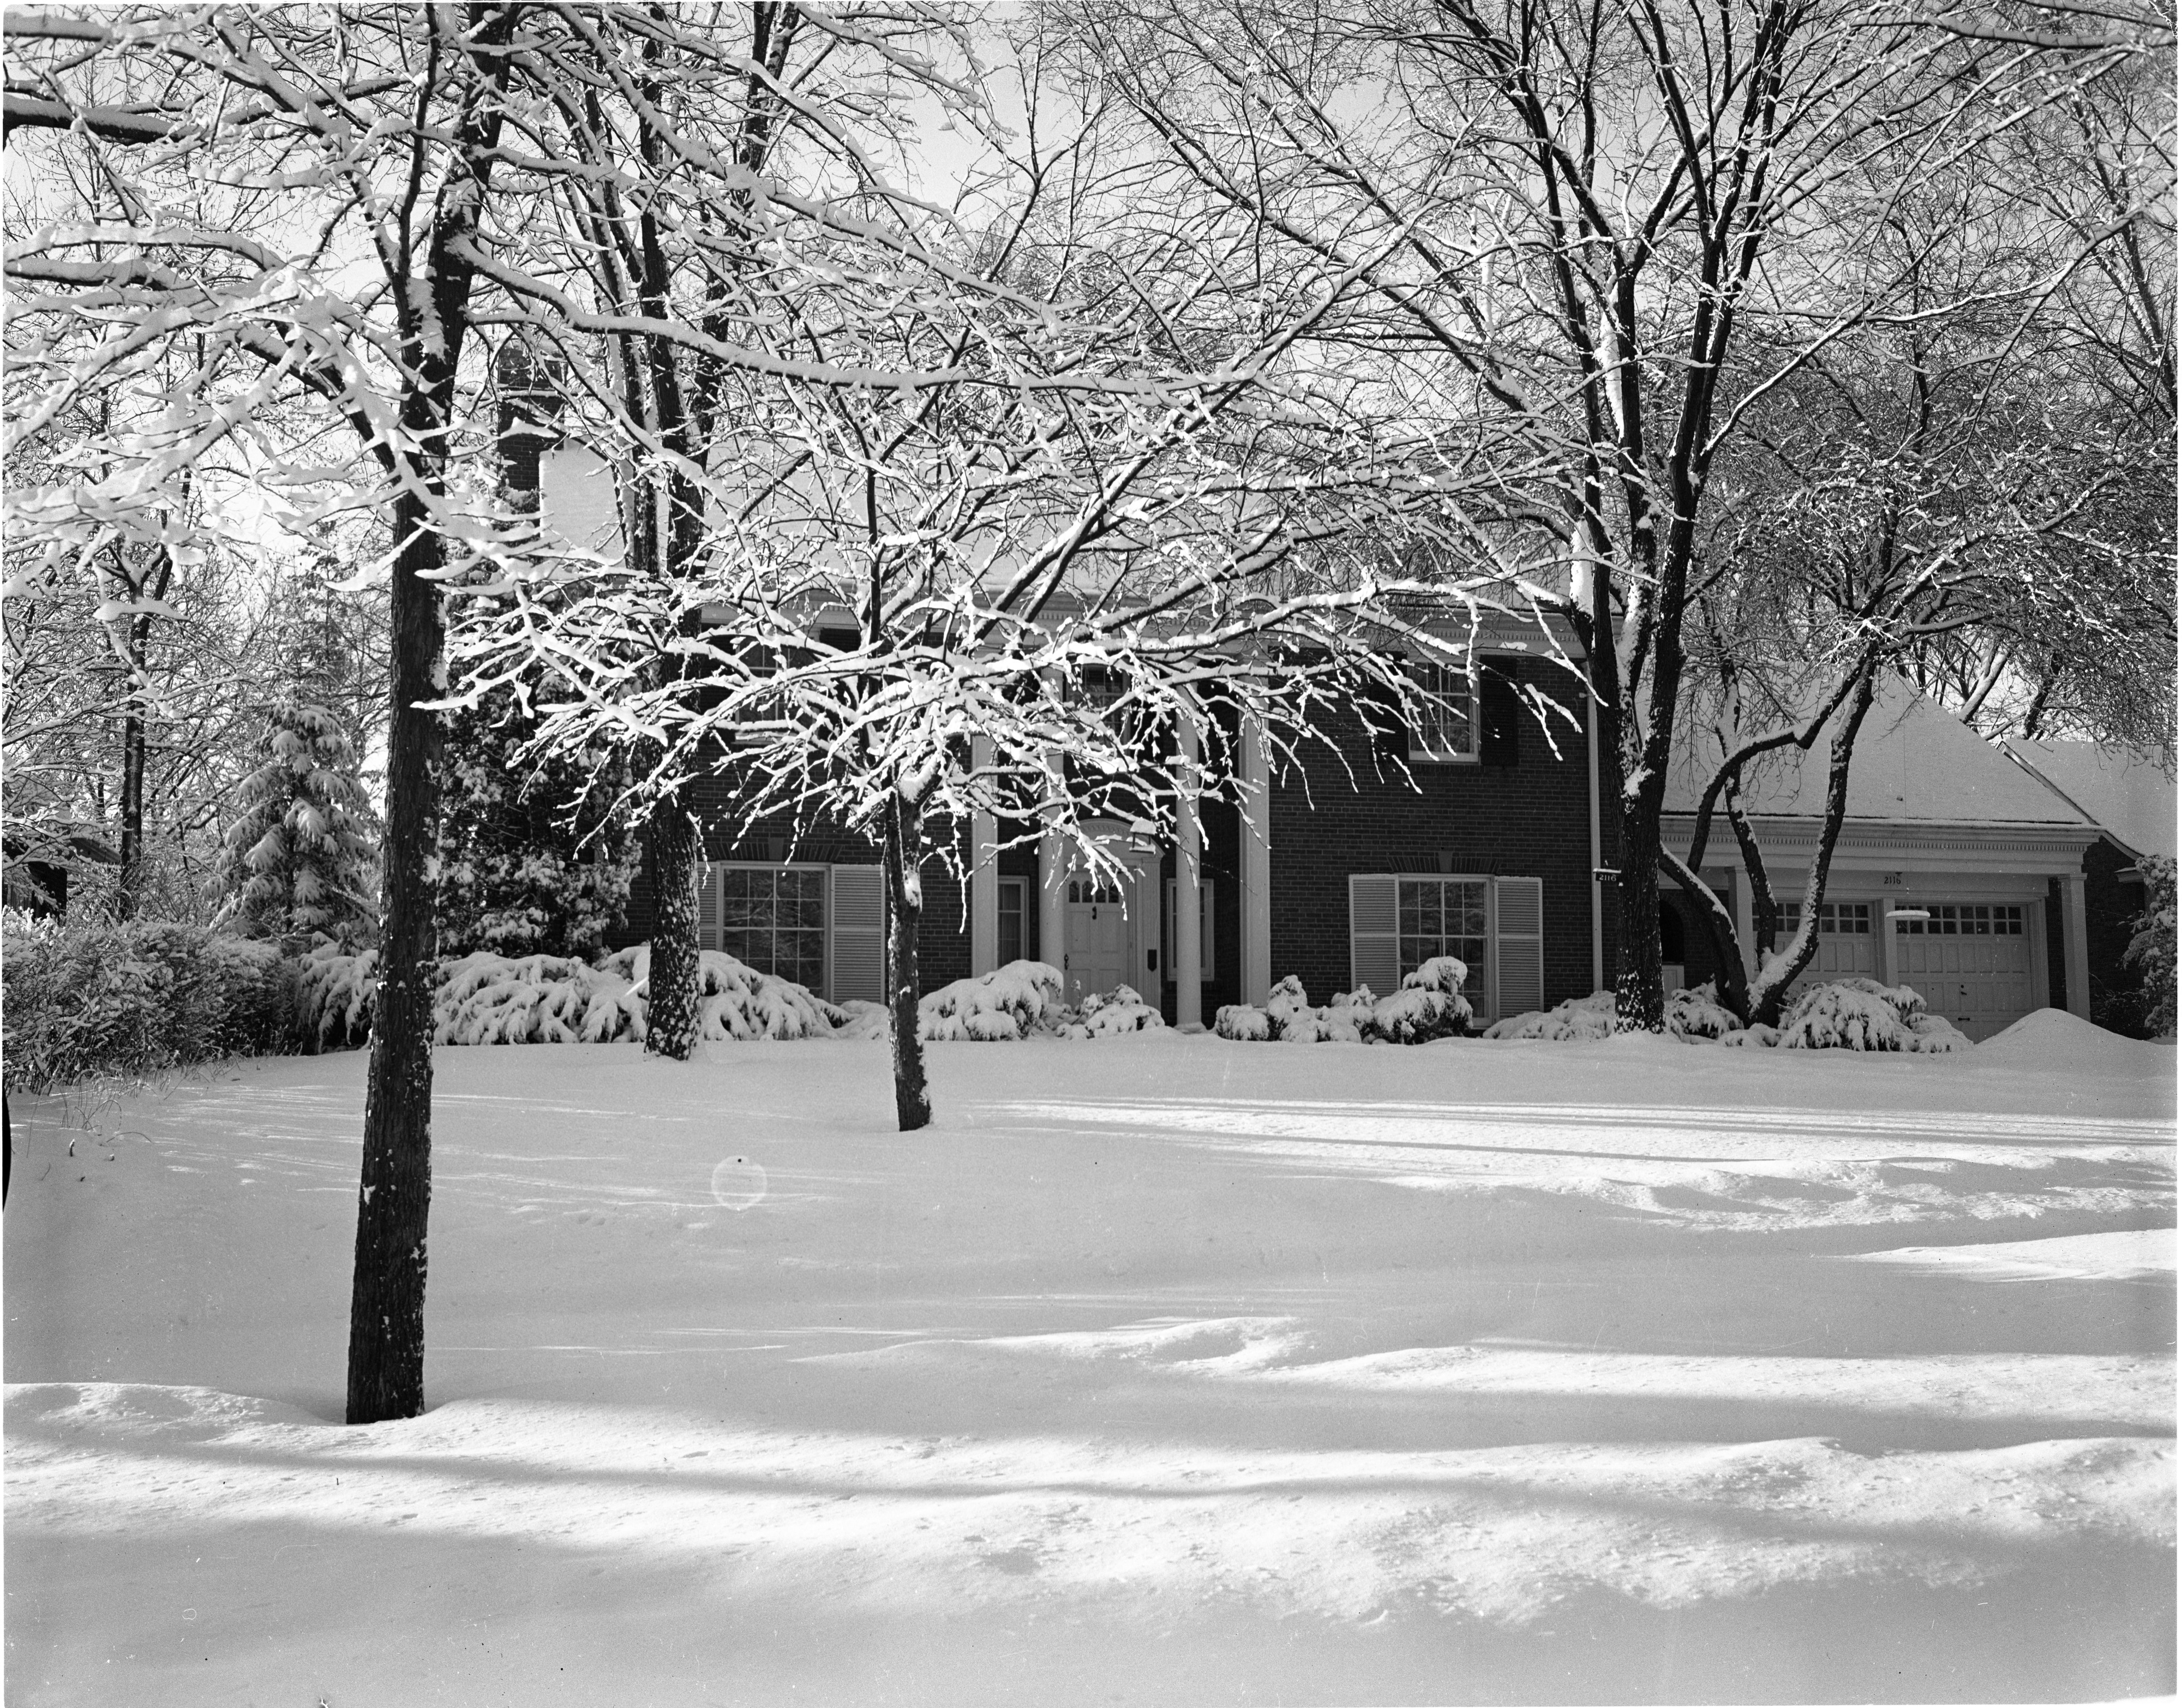 Mayor William E. Brown Jr.'s Home Covered In Fresh Snow, February 1957 image